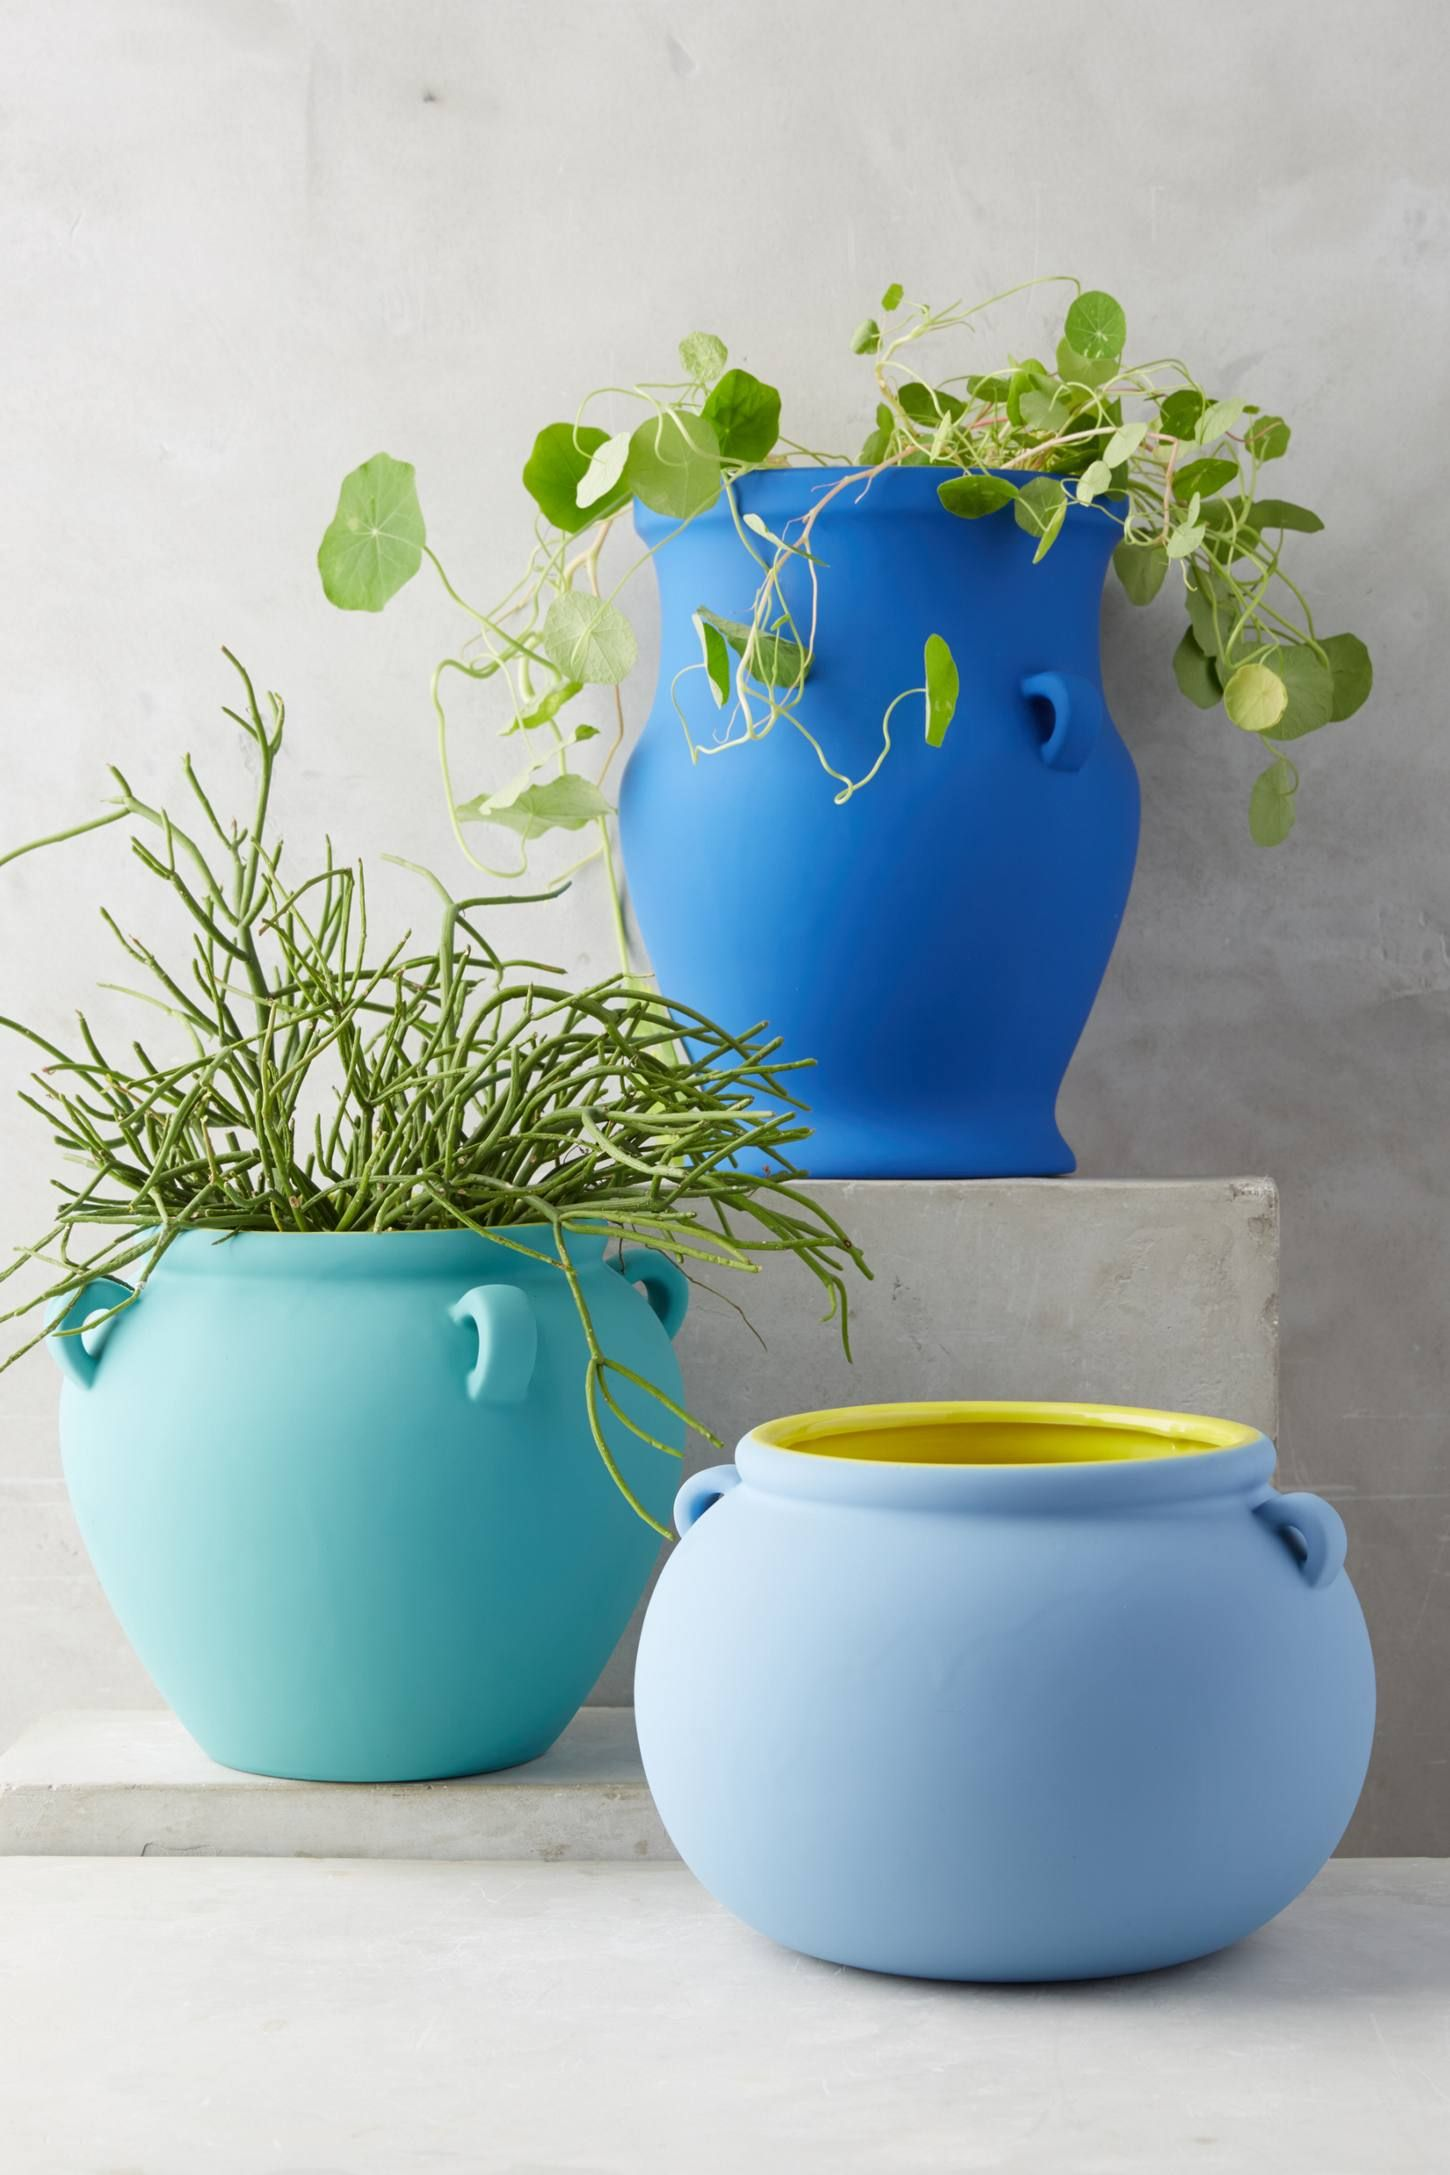 Pierre Color Contrast Pot Blue Planter Flower Pots Outdoor Buy Plants